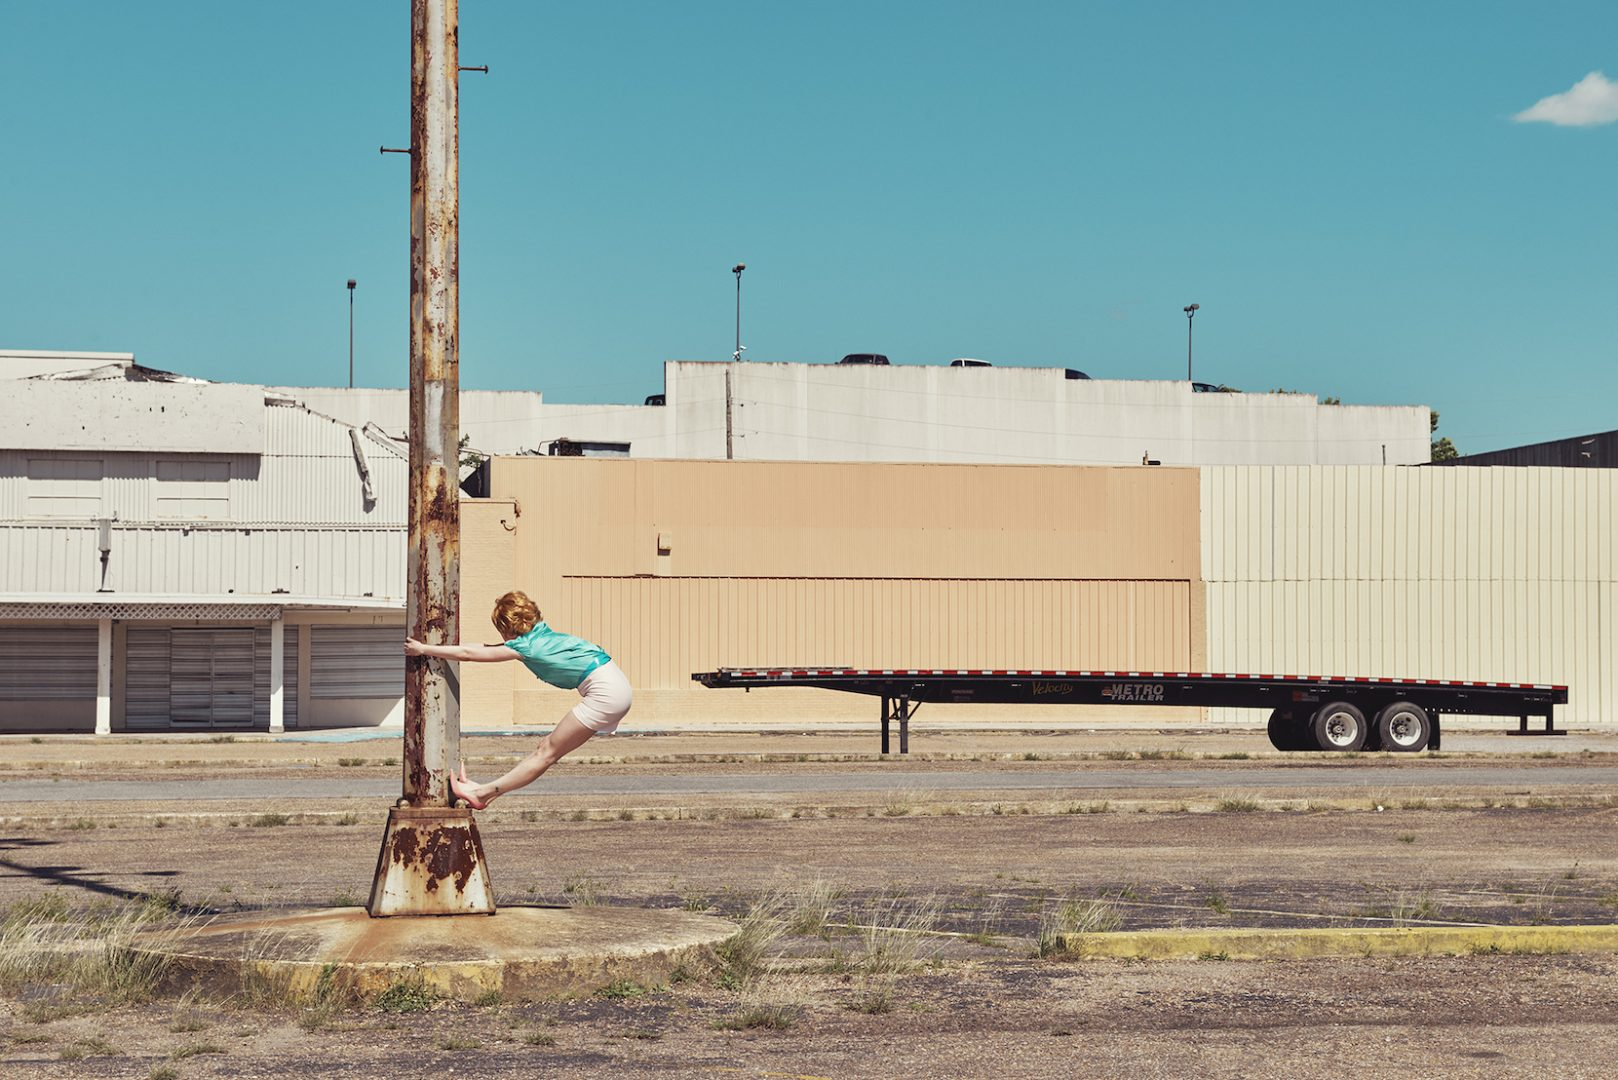 KOURTNEY ROY, your favourite Delinquent 9